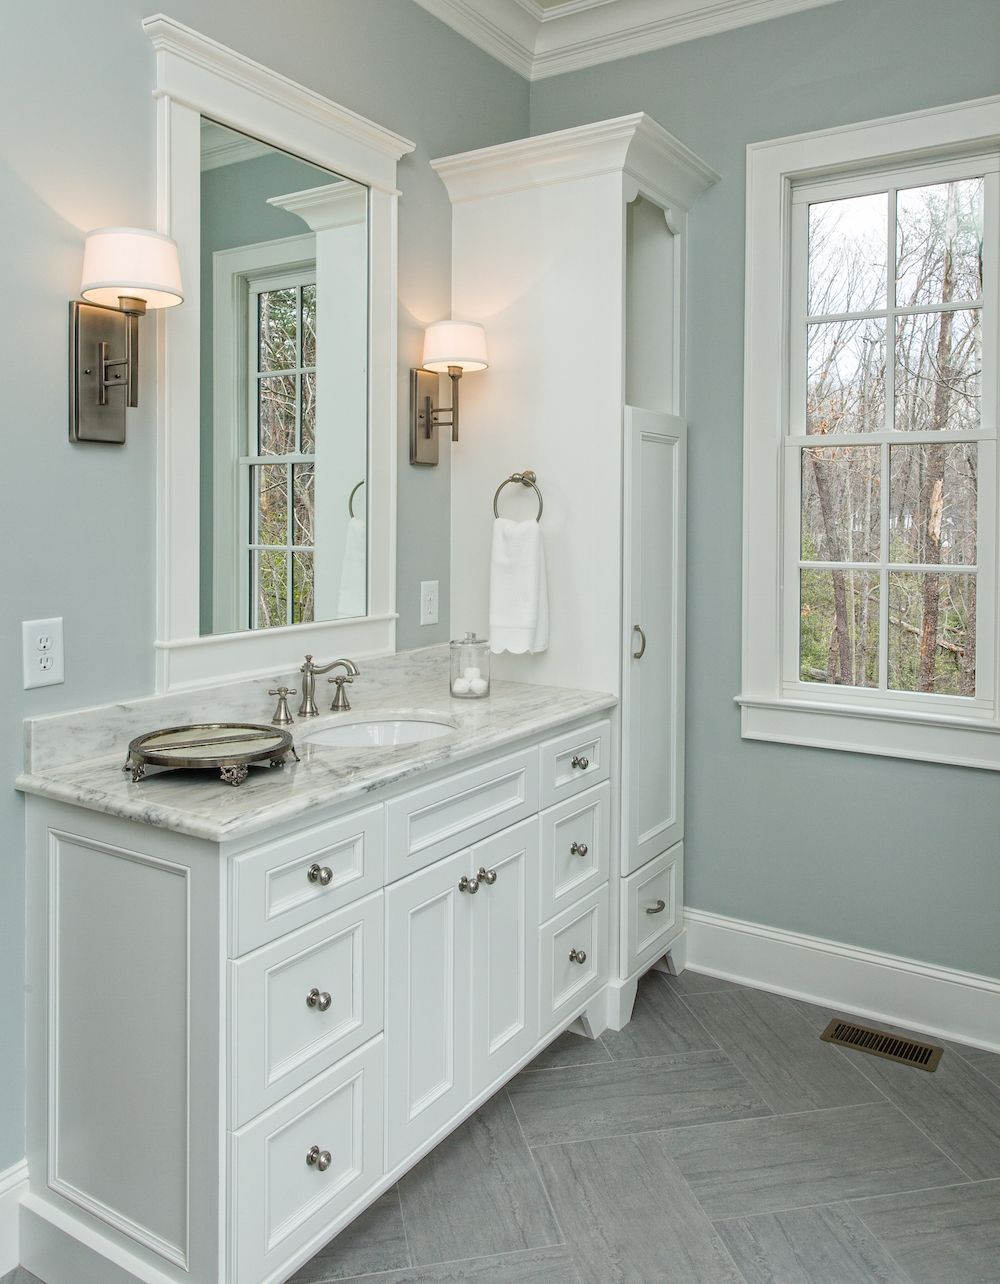 Beautiful Master Bathroom Complete With His And Hers Vanities In This Custom Built Home In